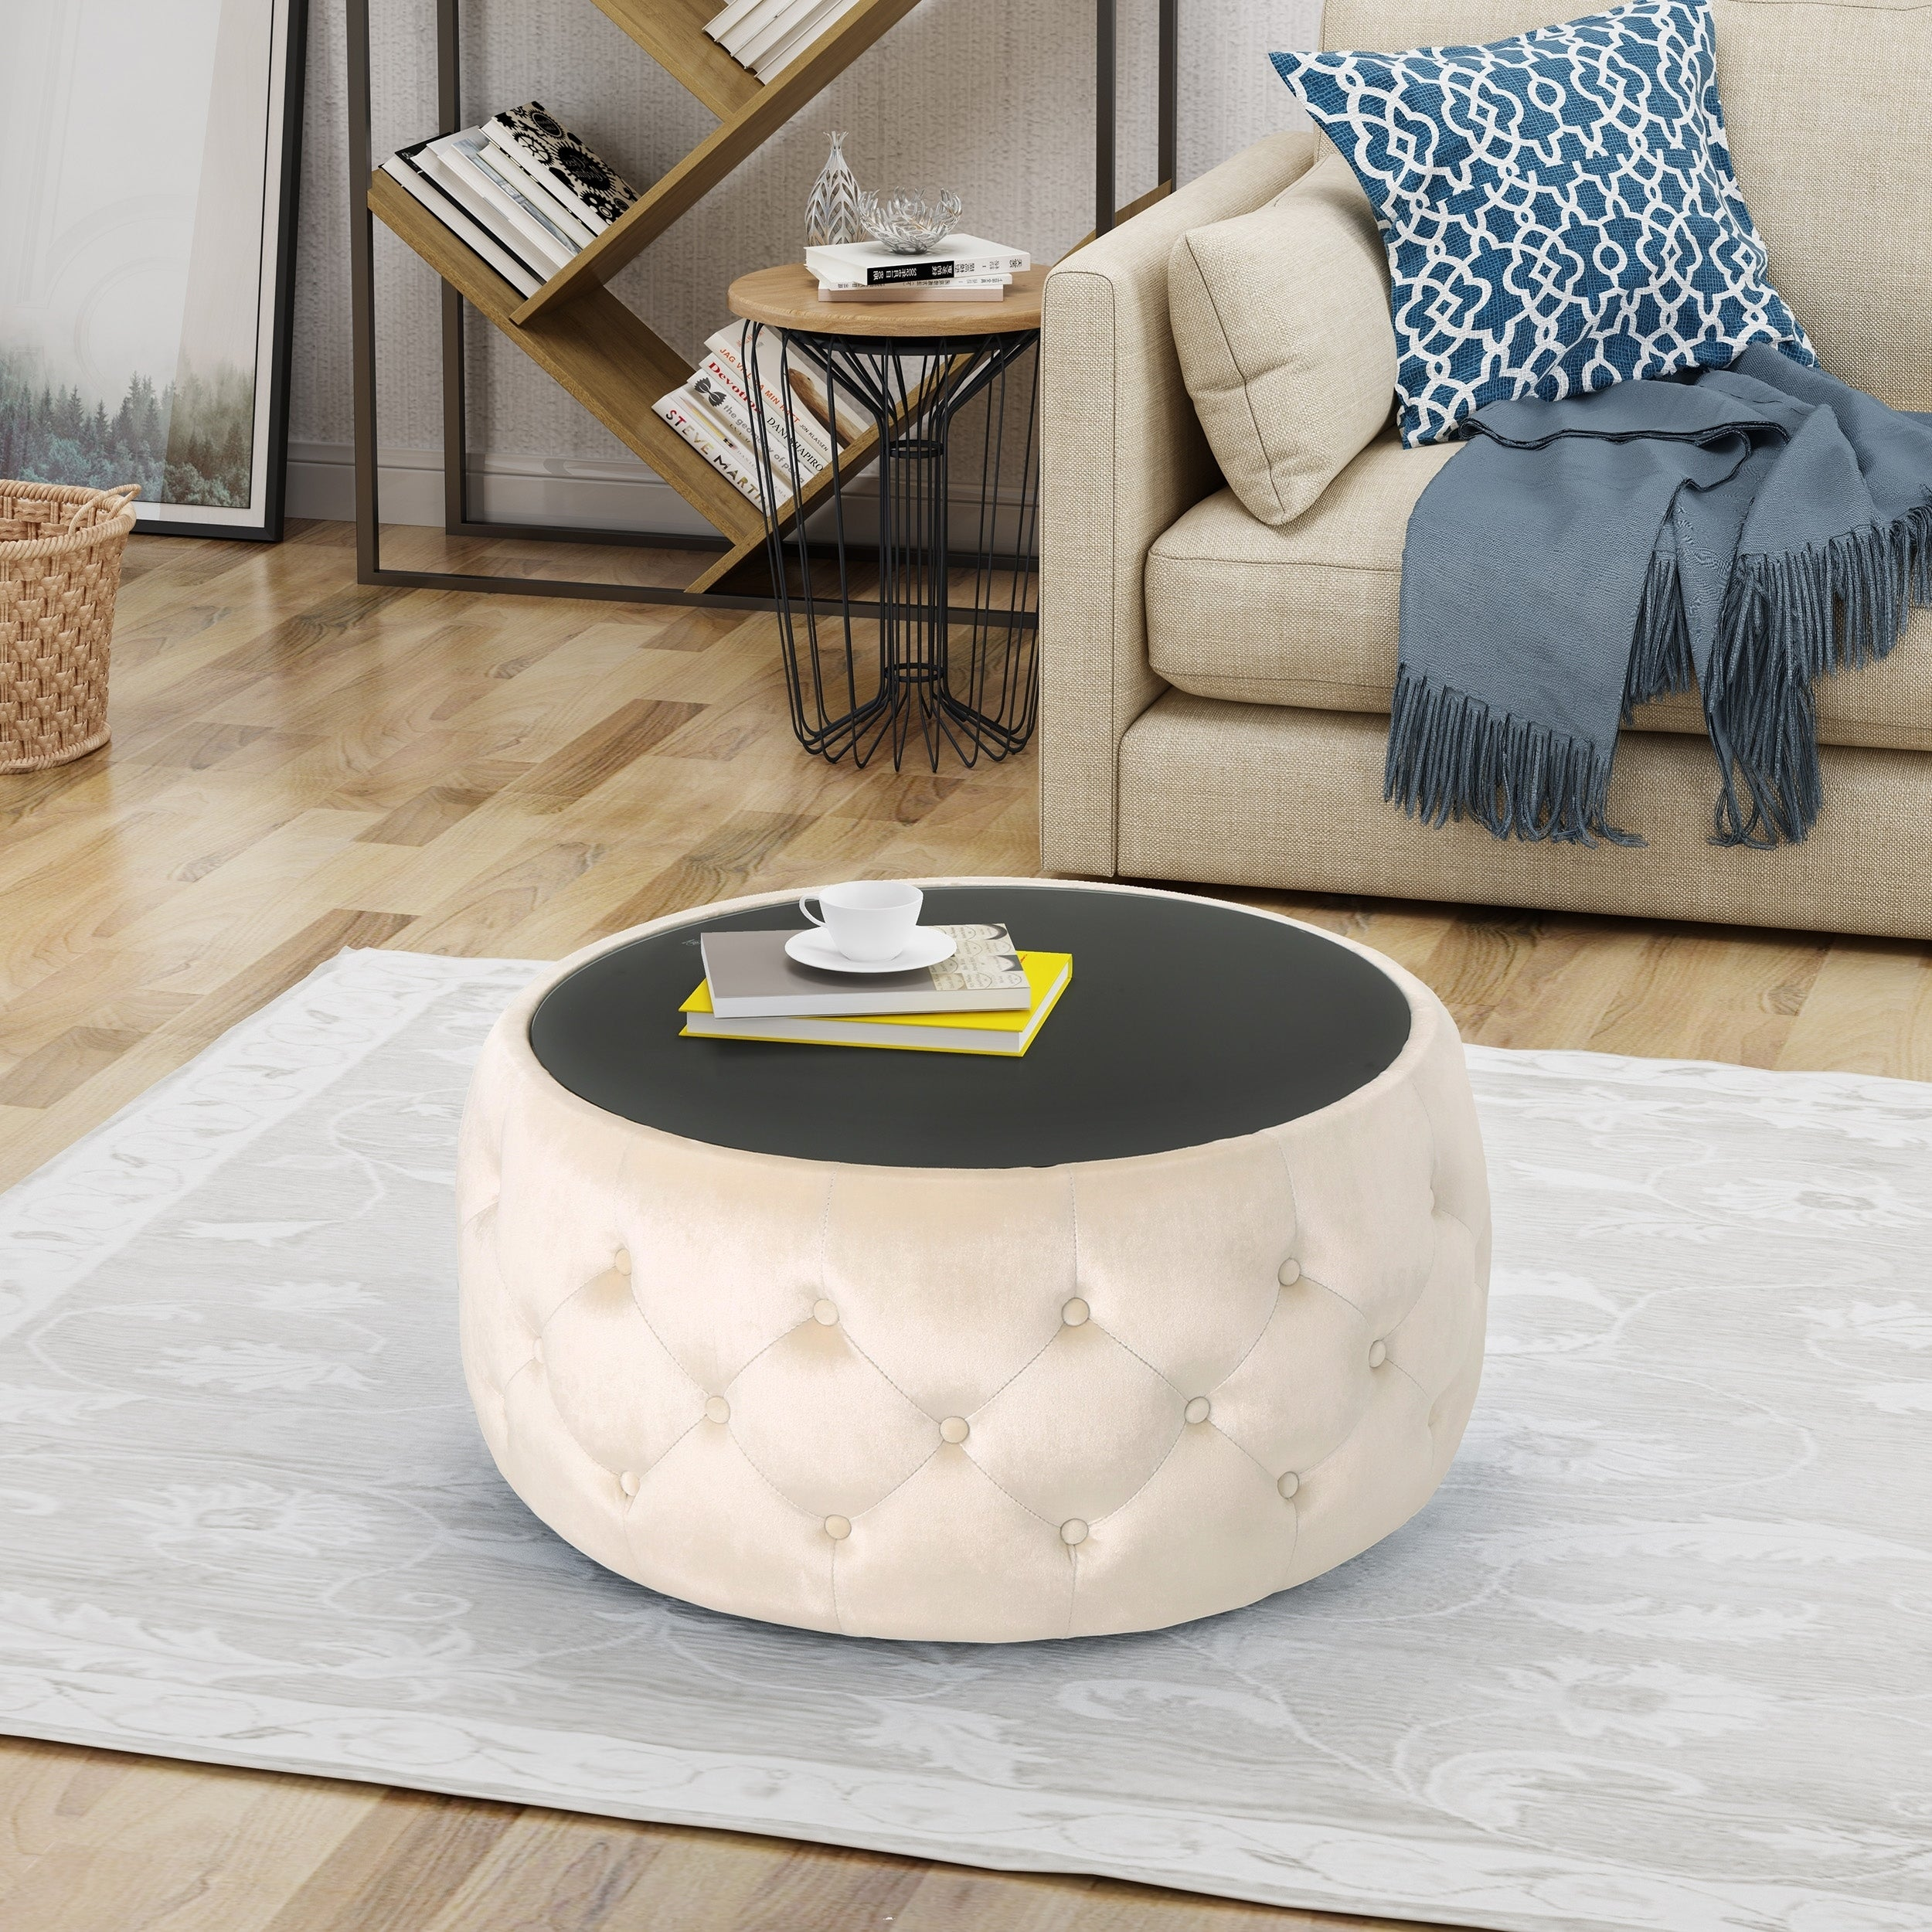 Details About Chana Glam Velvet And Tempered Glass Coffee Table Ottoman By  N/A